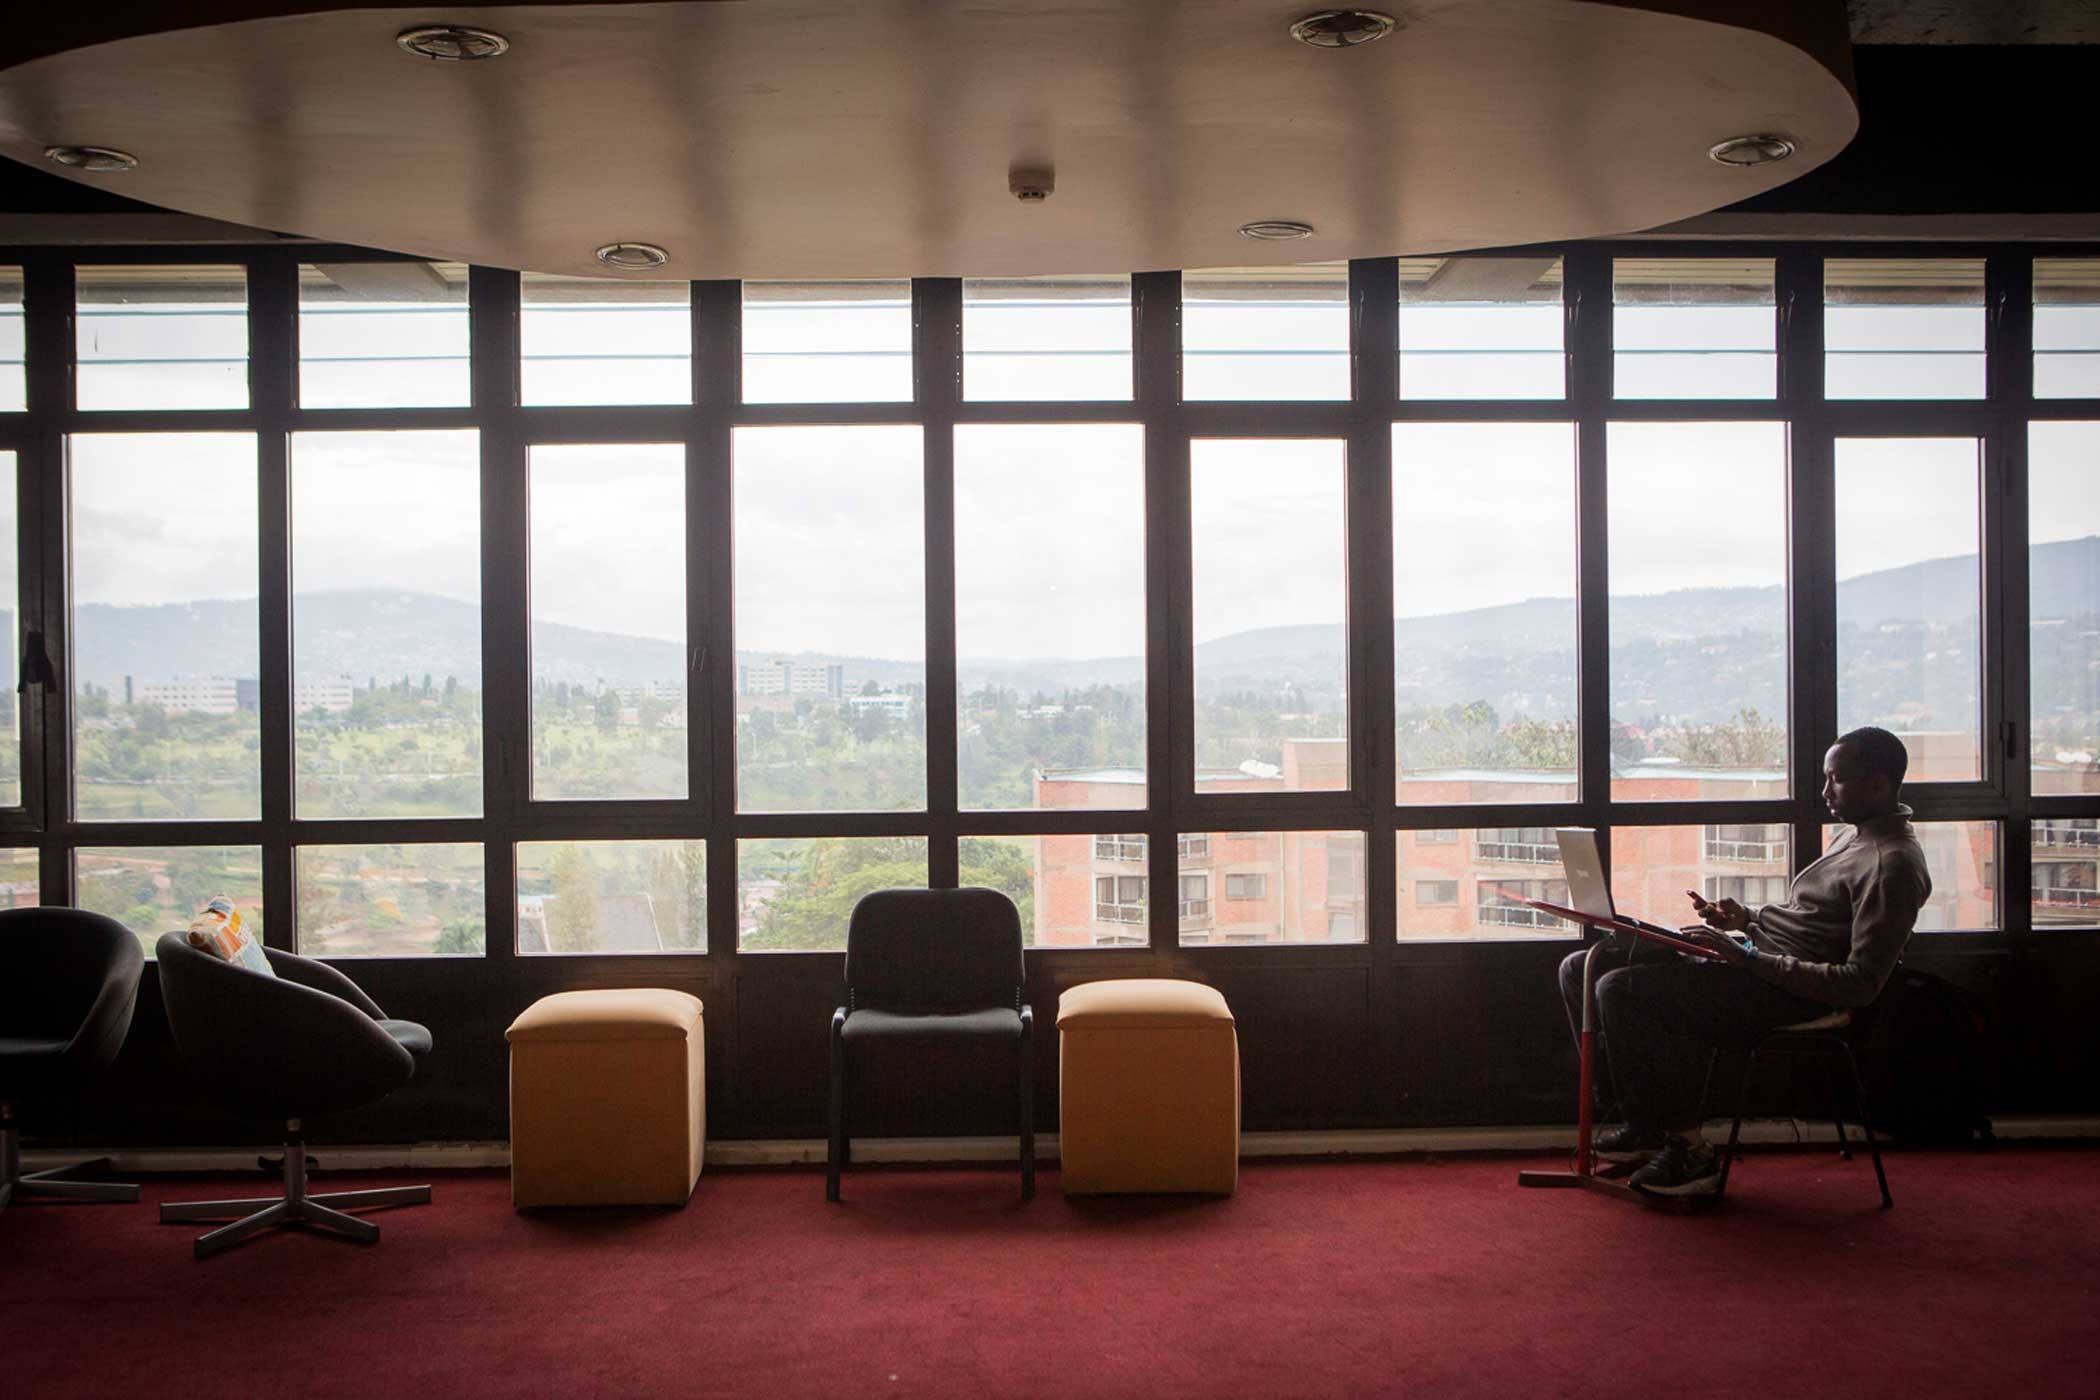 Inside kLab, a co-working space for tech entrepreneurs located in Telecom House in Kigali's future high-tech ICT neighborhood, Kacyiru.